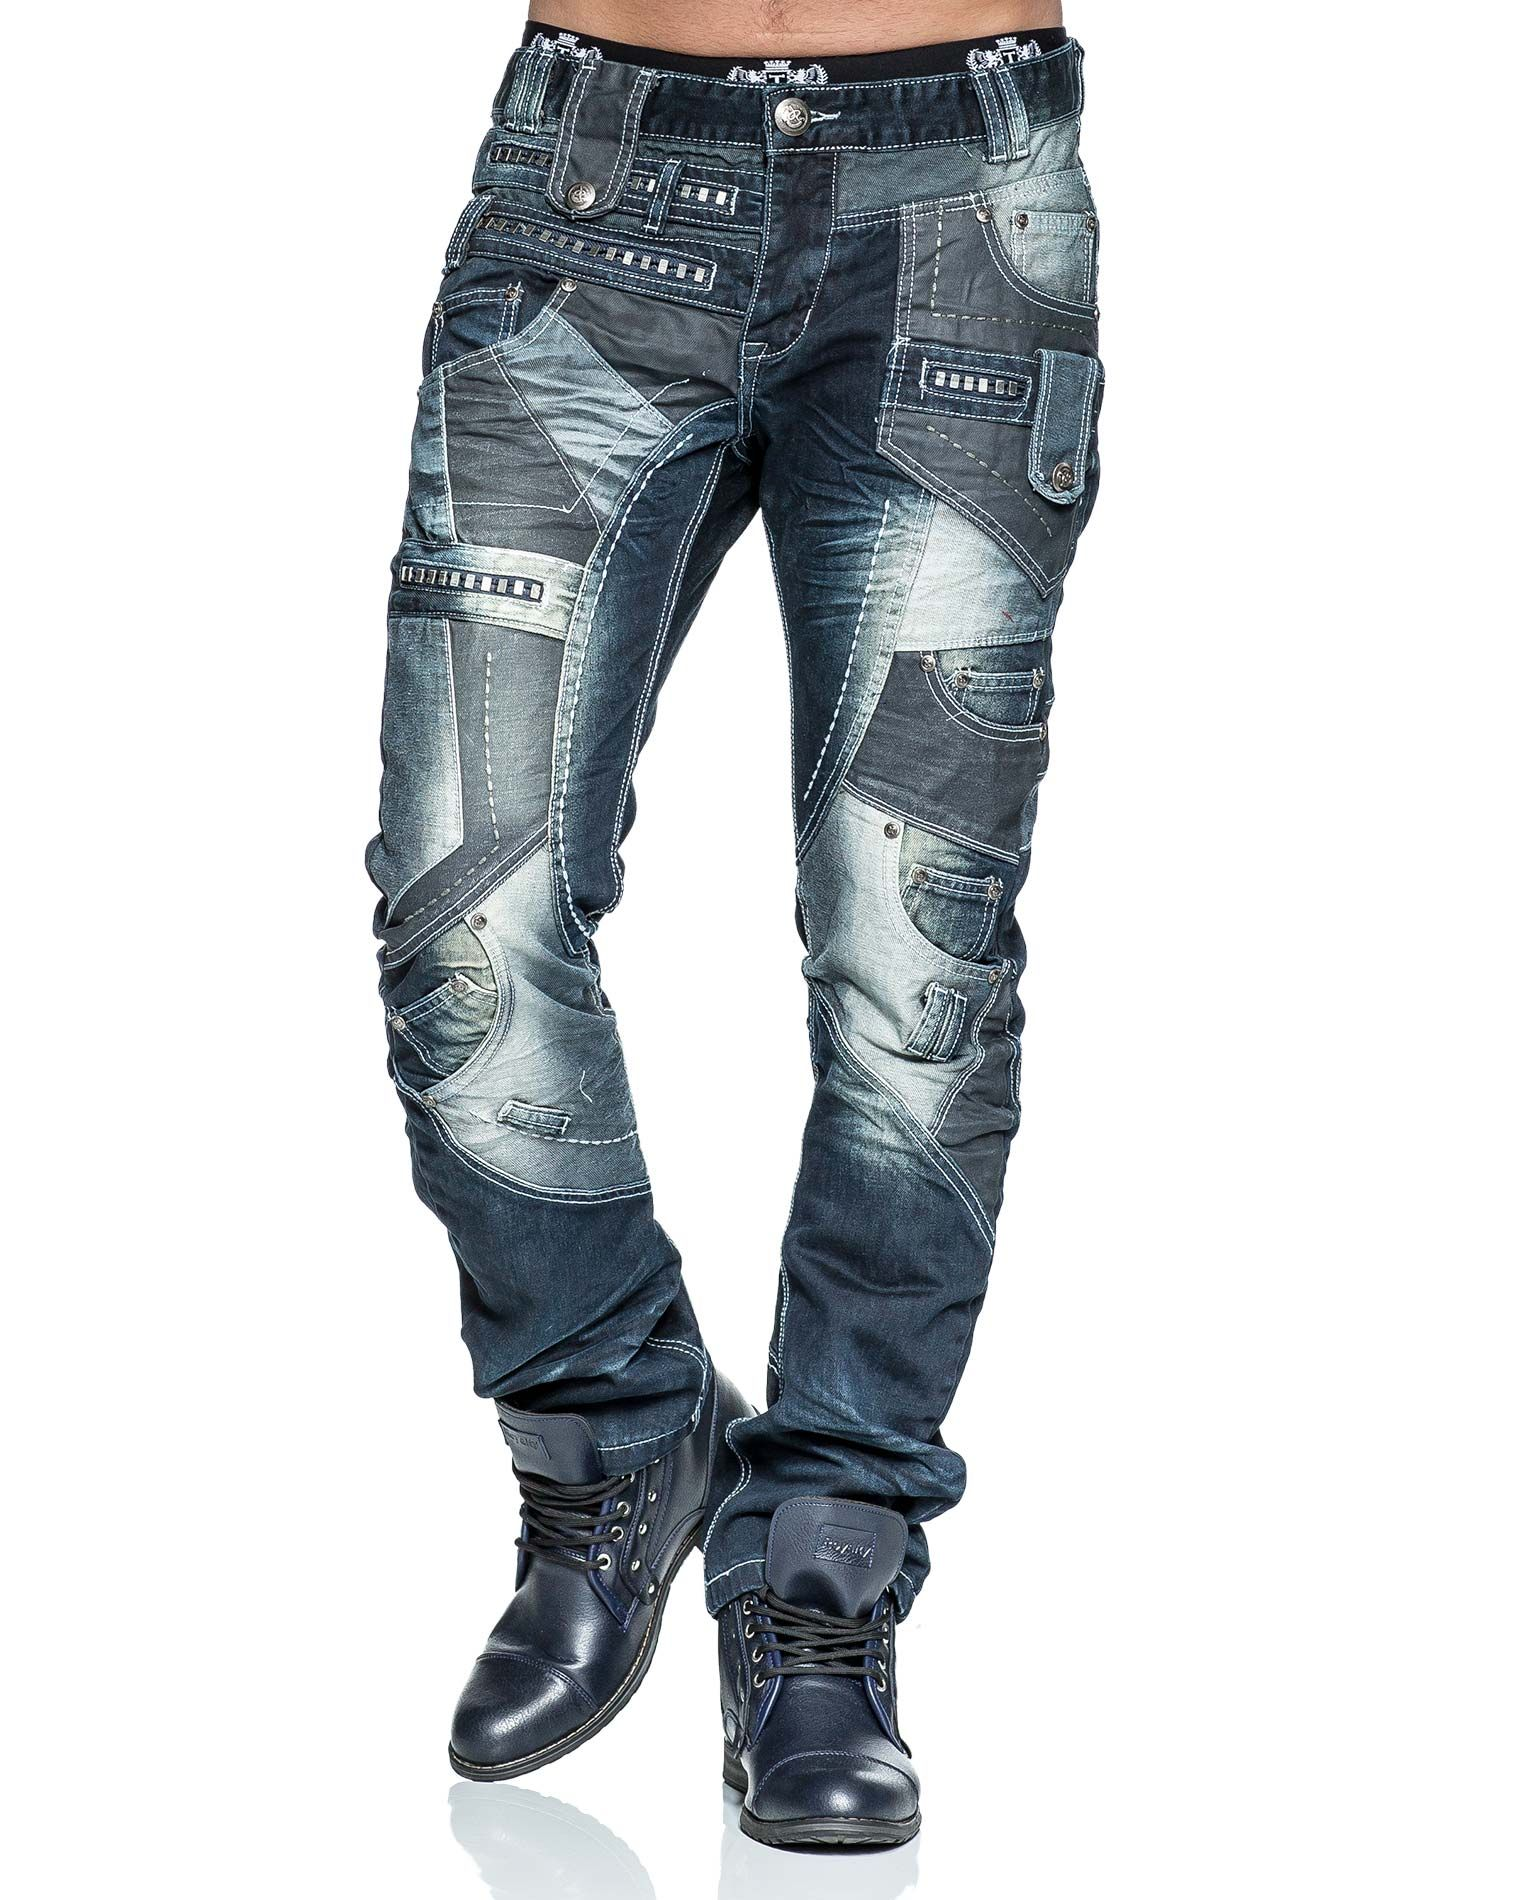 FASHION G TIME IS MONEY DENIM PEVIANI DESIGNER TAPERED COMFORT STYLE STAR JEANS